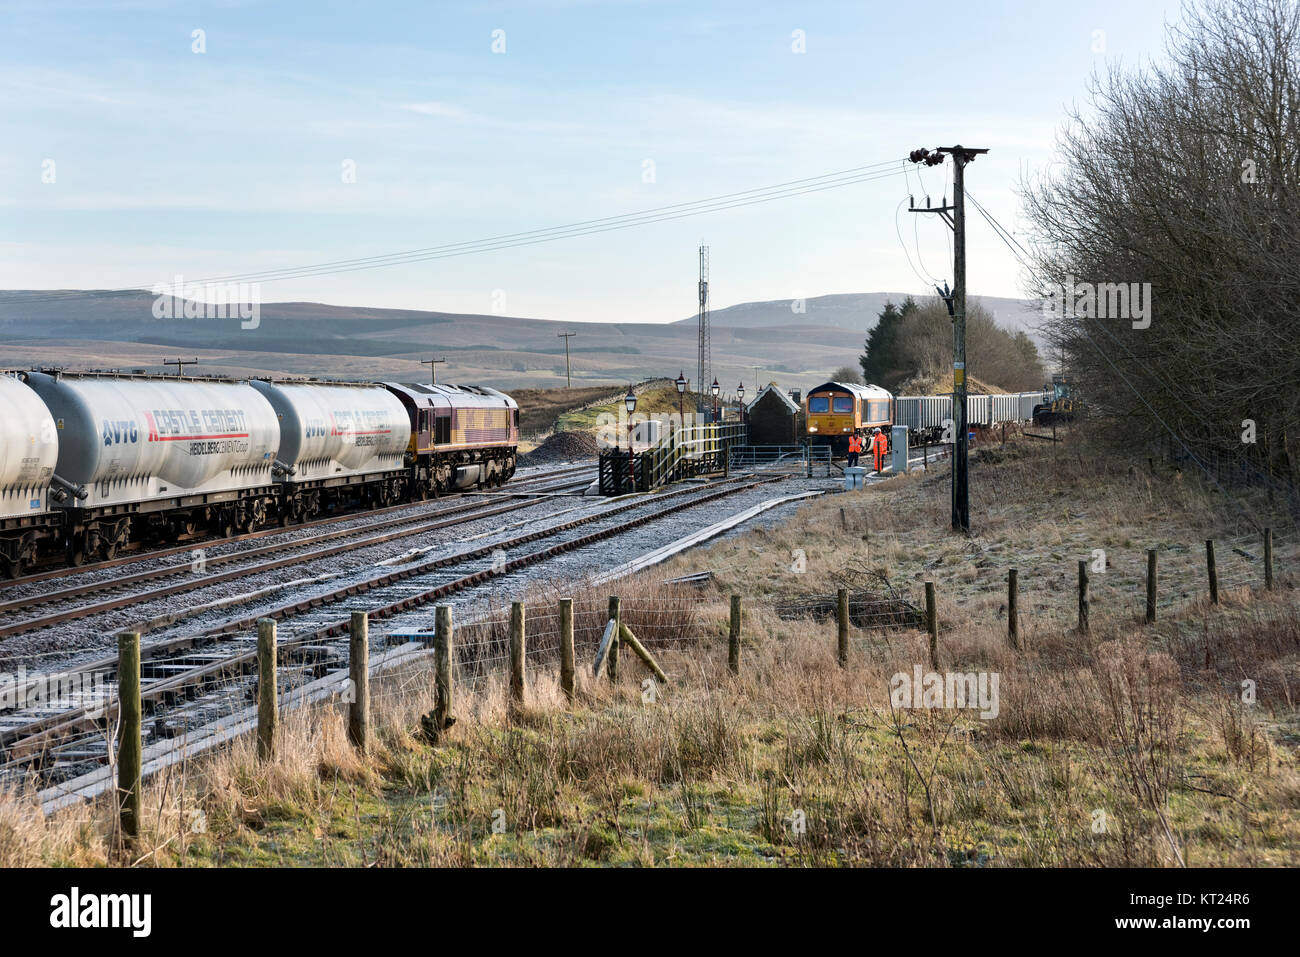 Cement waggon train drawn by Class 66 locomotive passes another train loading stone in the siding at Ribblehead - Stock Image